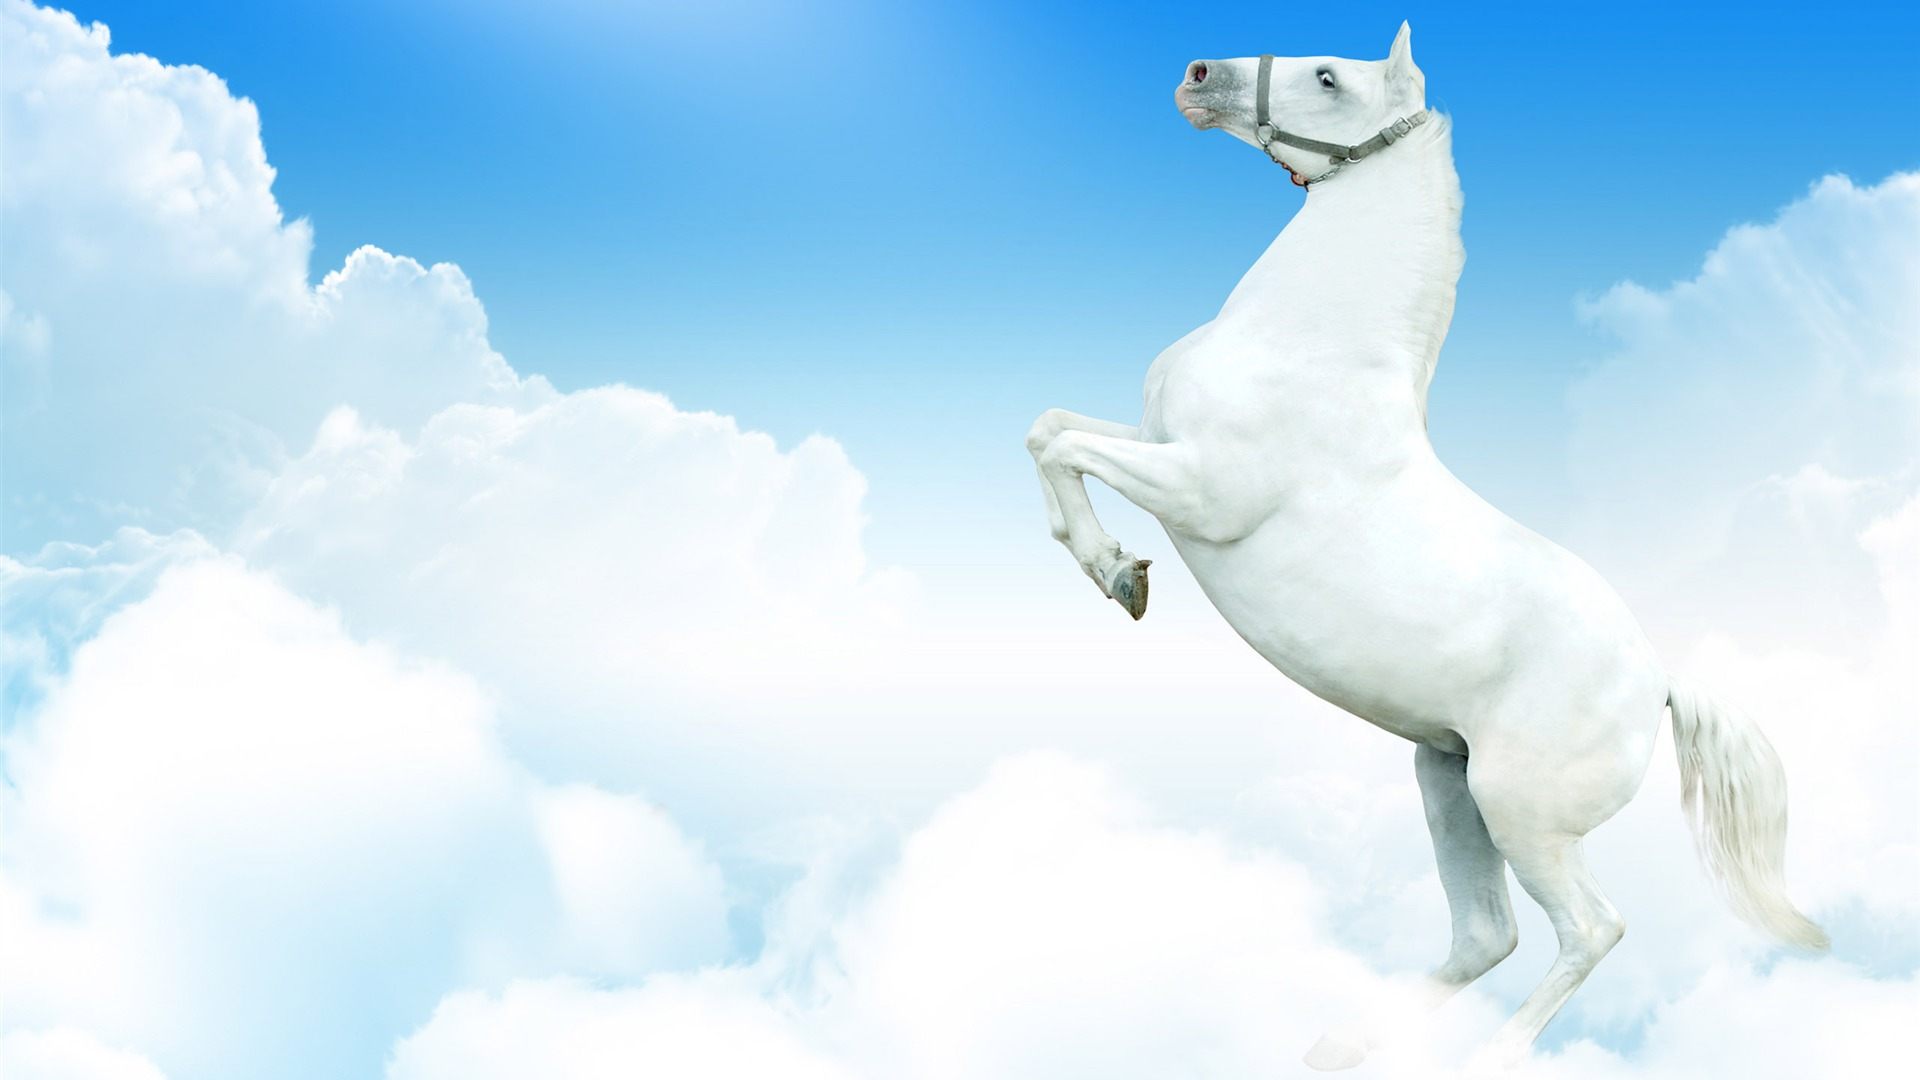 Super Horse Photo Wallpaper 2 7 1920x1080 Wallpaper Download